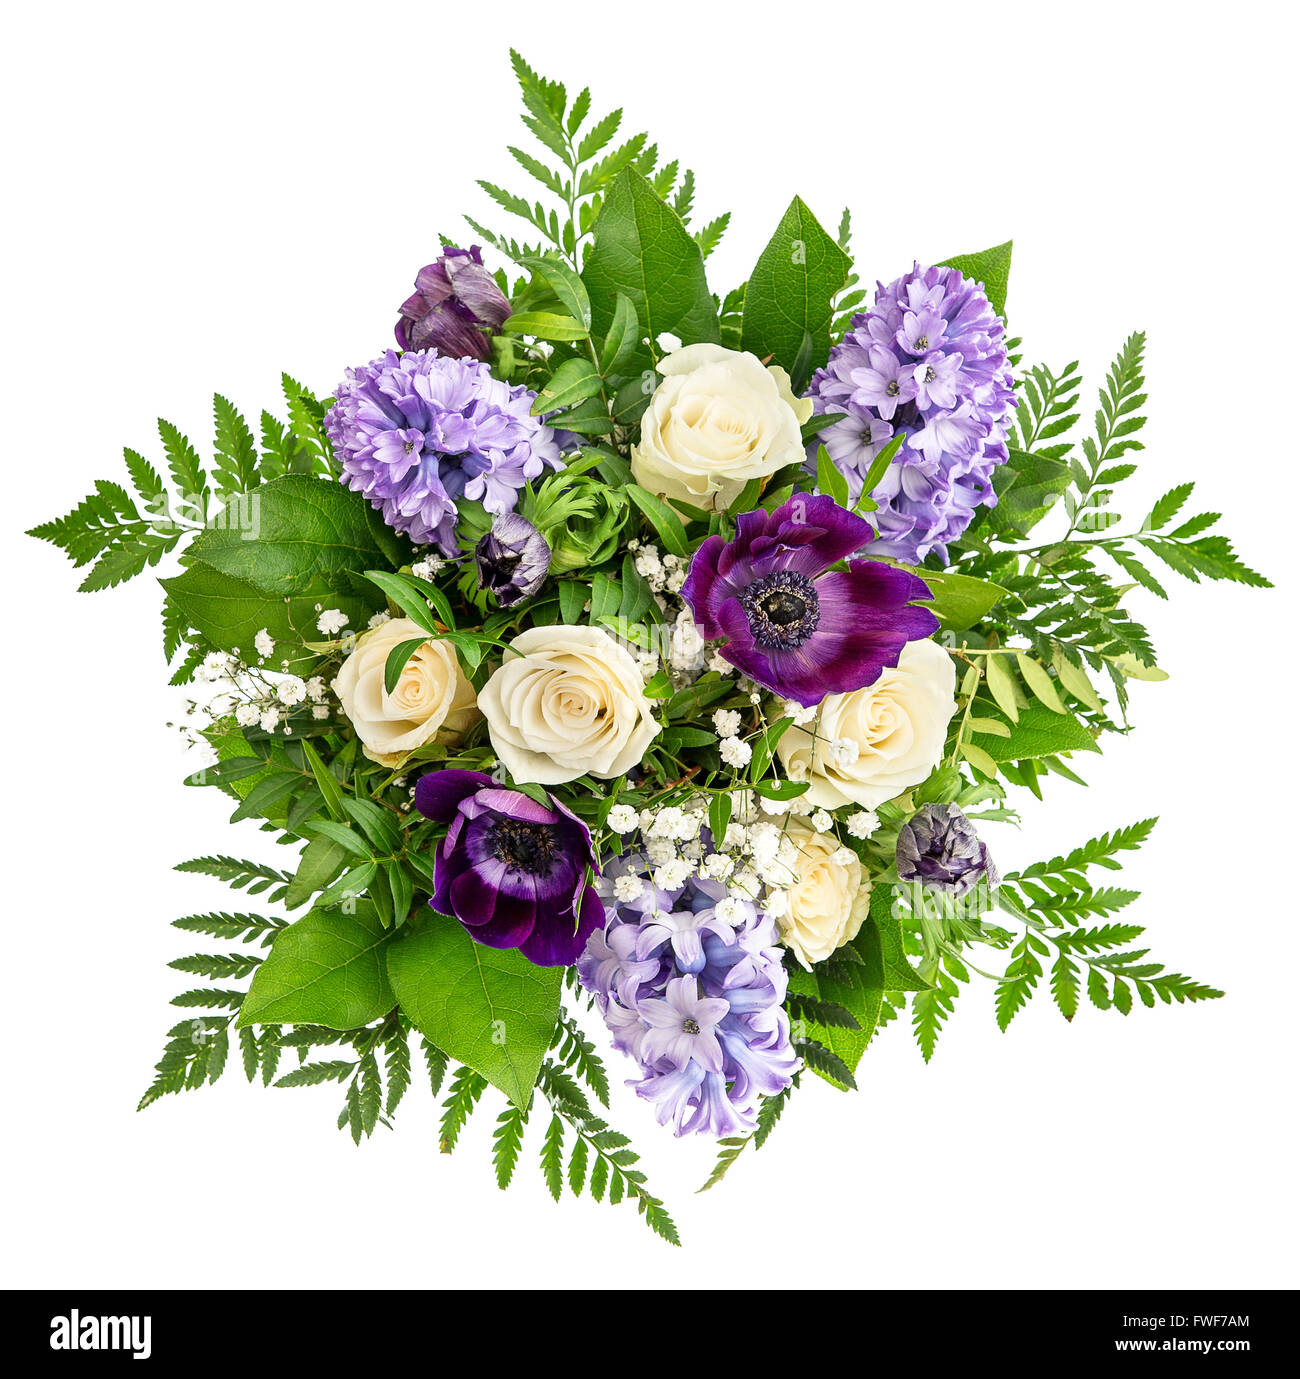 Roses and Hyacinth Flowers Over White Background. Spring Bouquet ...